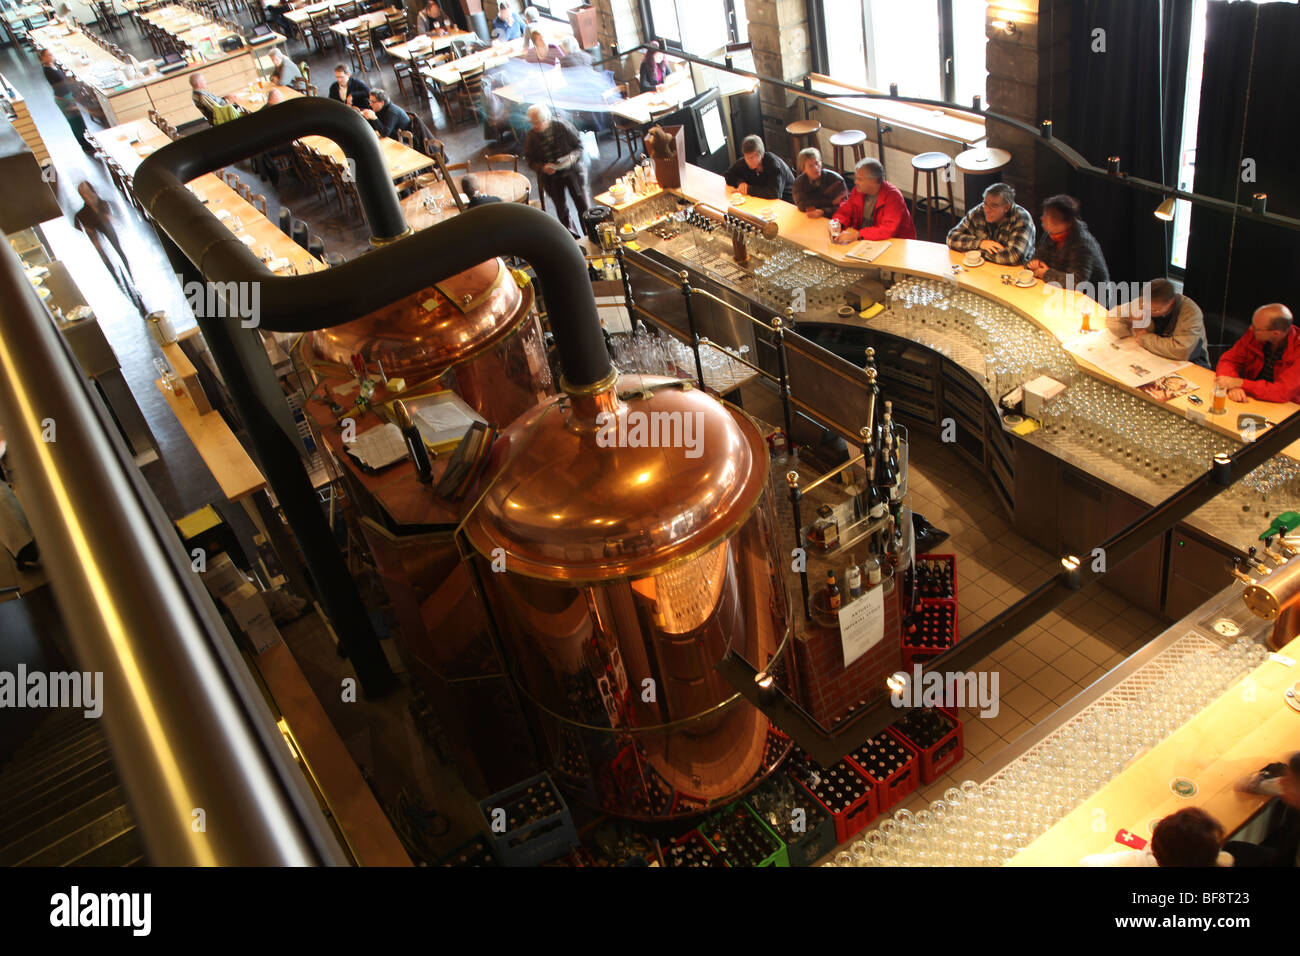 TramDepot Restaurant and Brewery - Stock Image